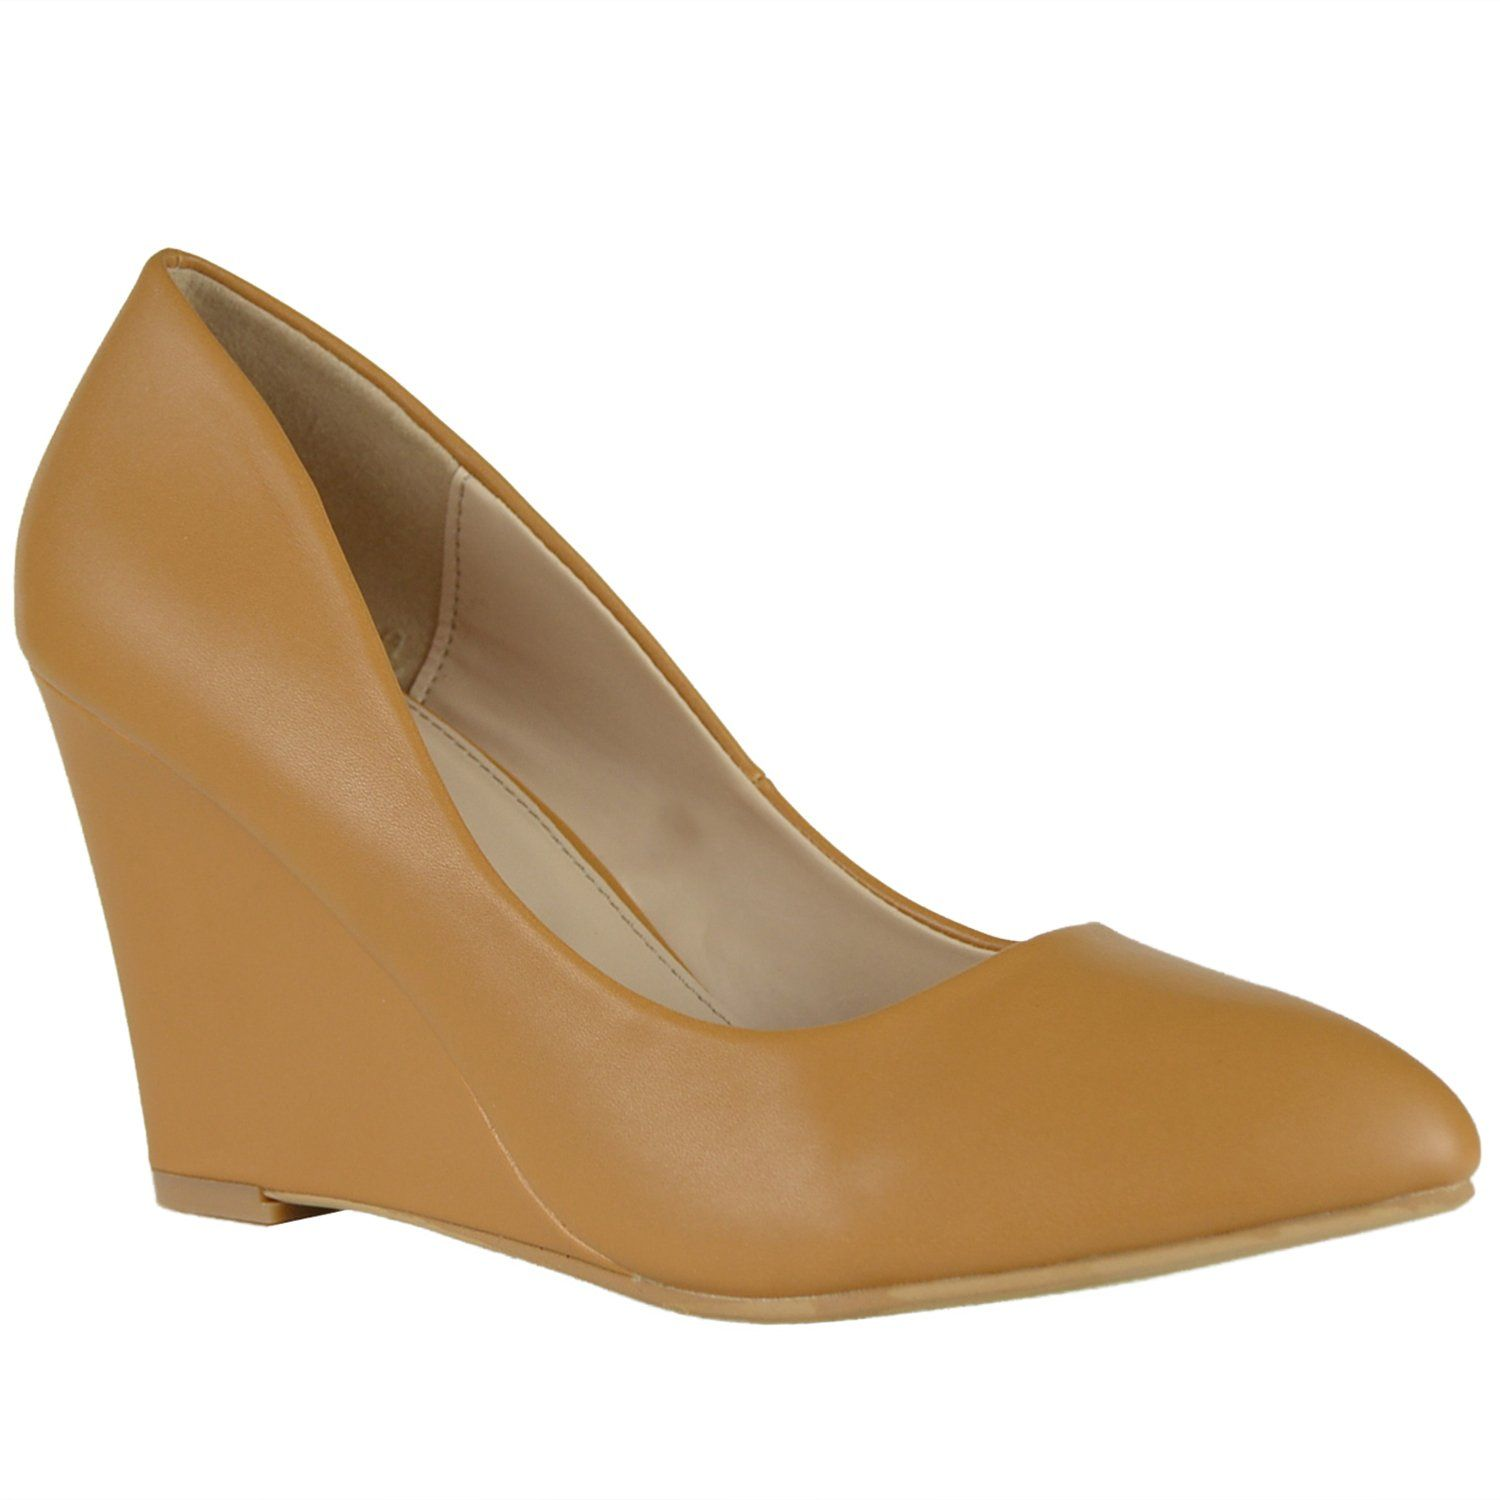 Womens Dress Shoes Almond Toe High Heel Casual Wedges Tan